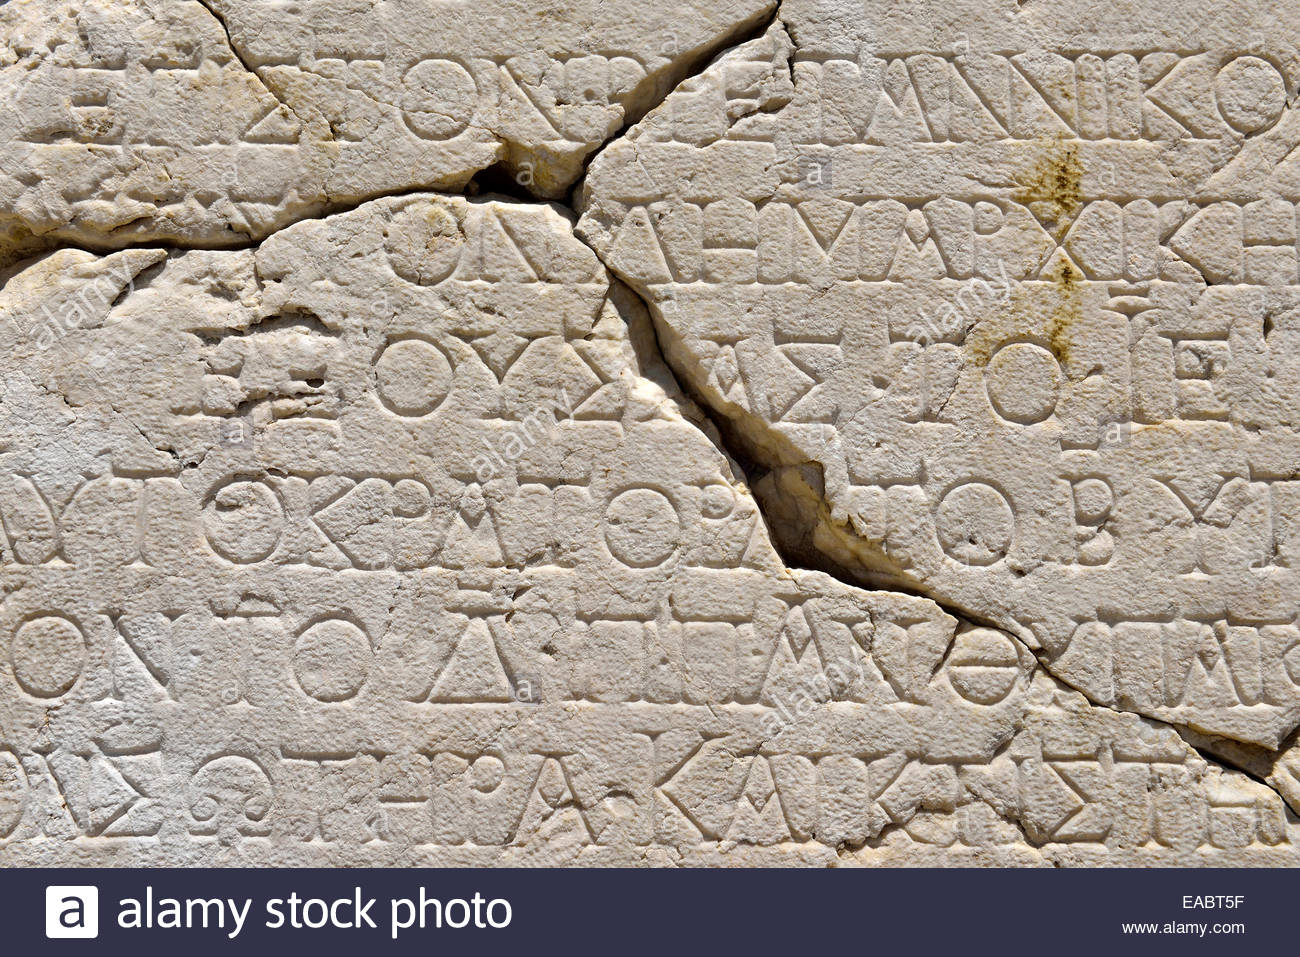 Turkey Pisidia Greek inscription at Sagalassos archaeological site - Stock Image